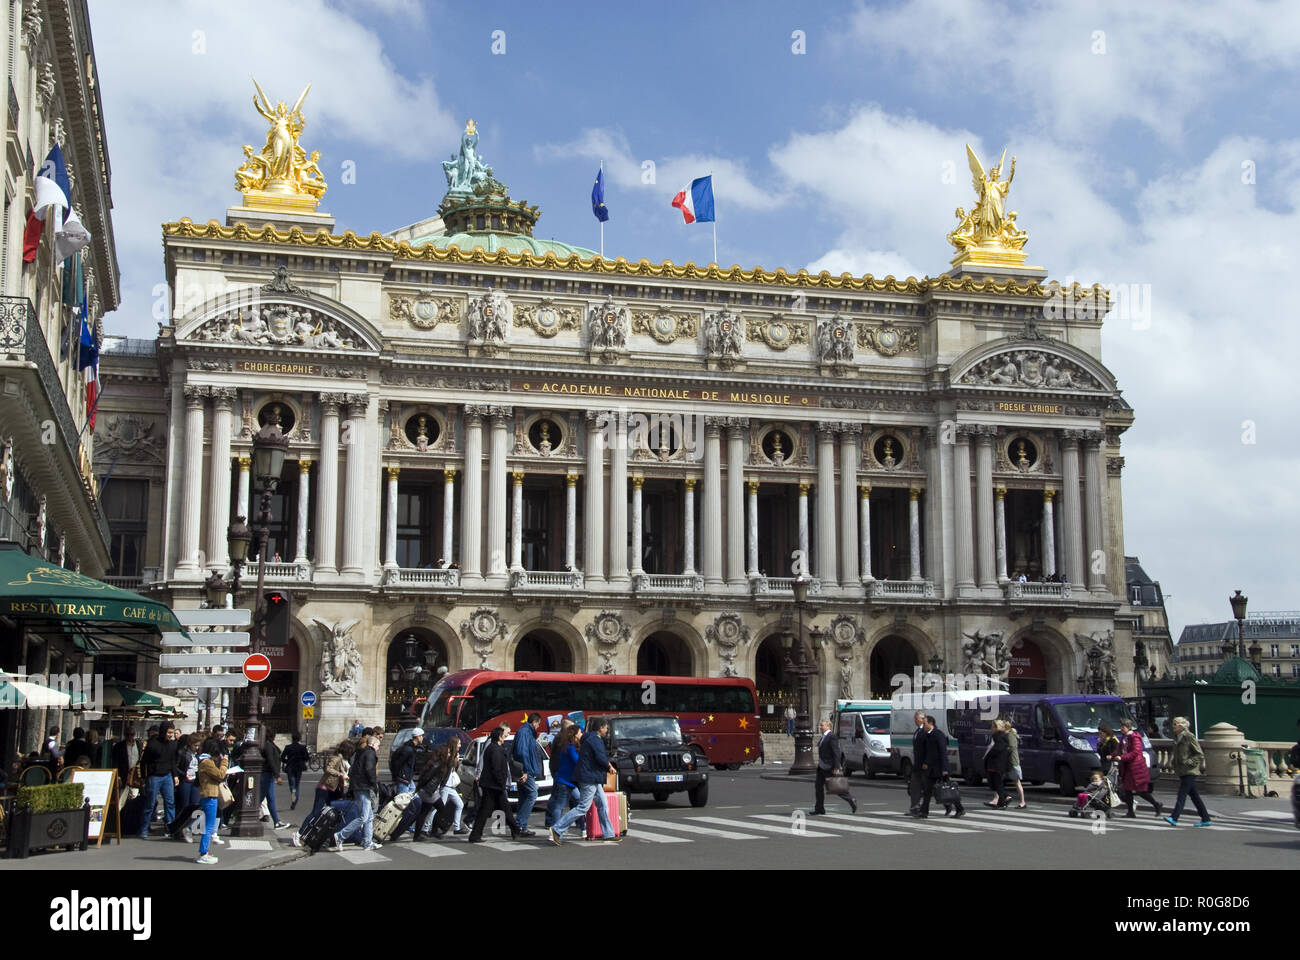 The Palais Garnier (Garnier Palace) opera house, famous as the setting for Gaston Leroux's 1910 novel 'The Phantom of the Opera,' Paris, France. - Stock Image